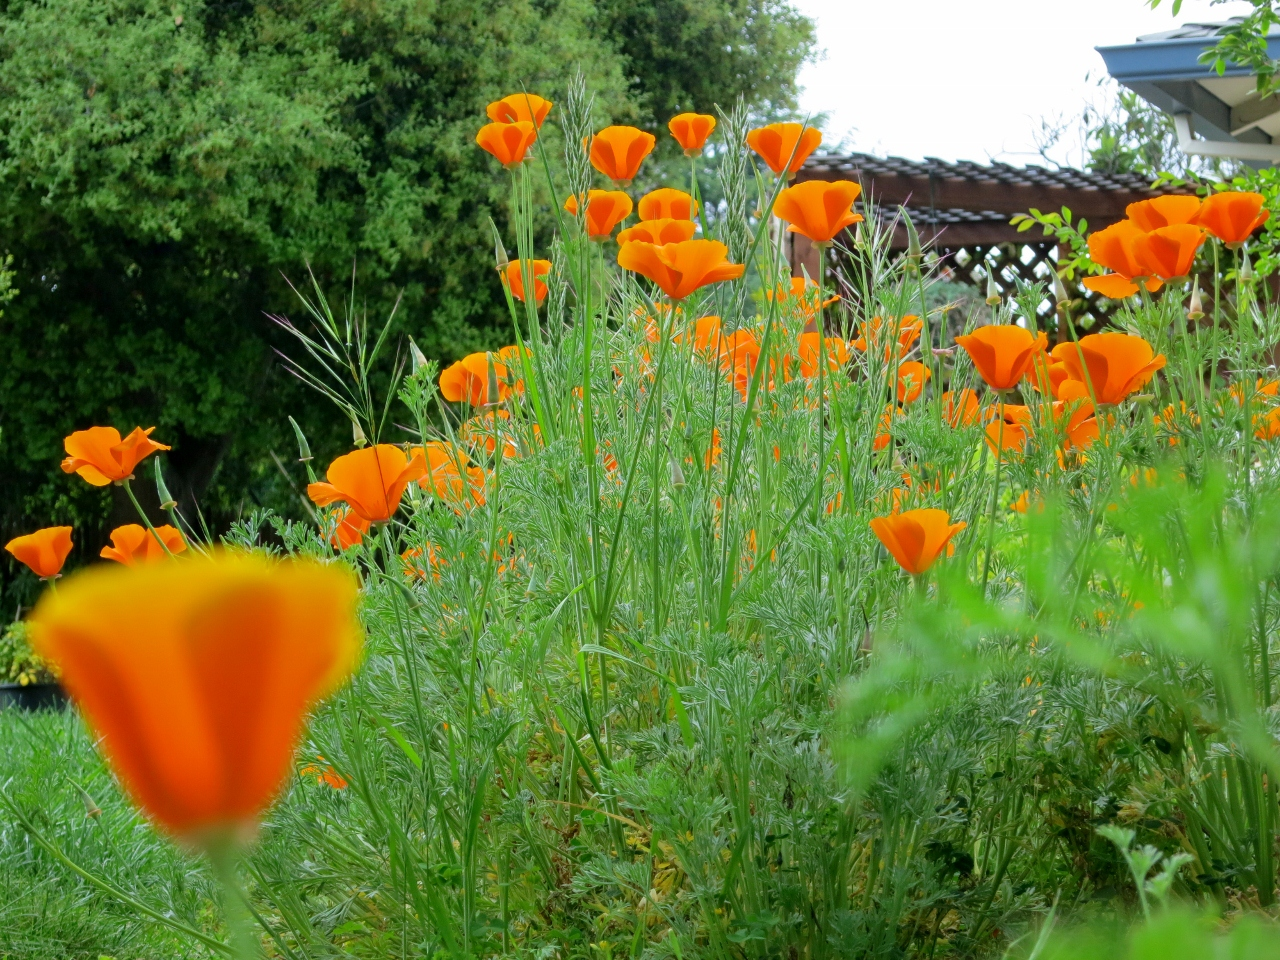 Last week these poppies  in this Califronai garden.